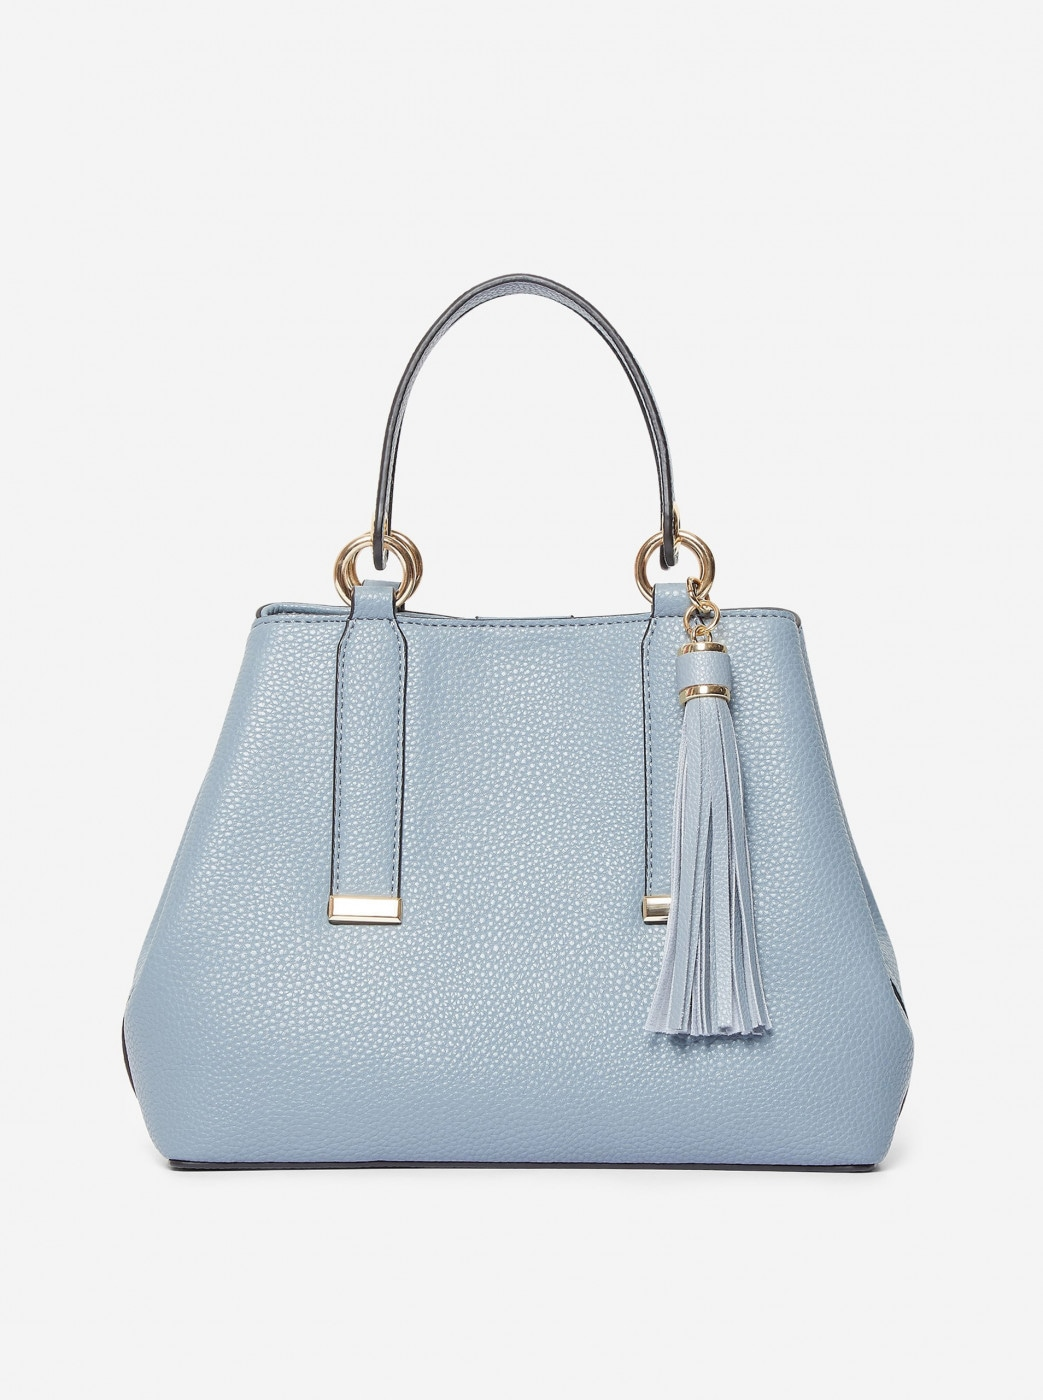 Dorothy Perkins Light Blue Handbag